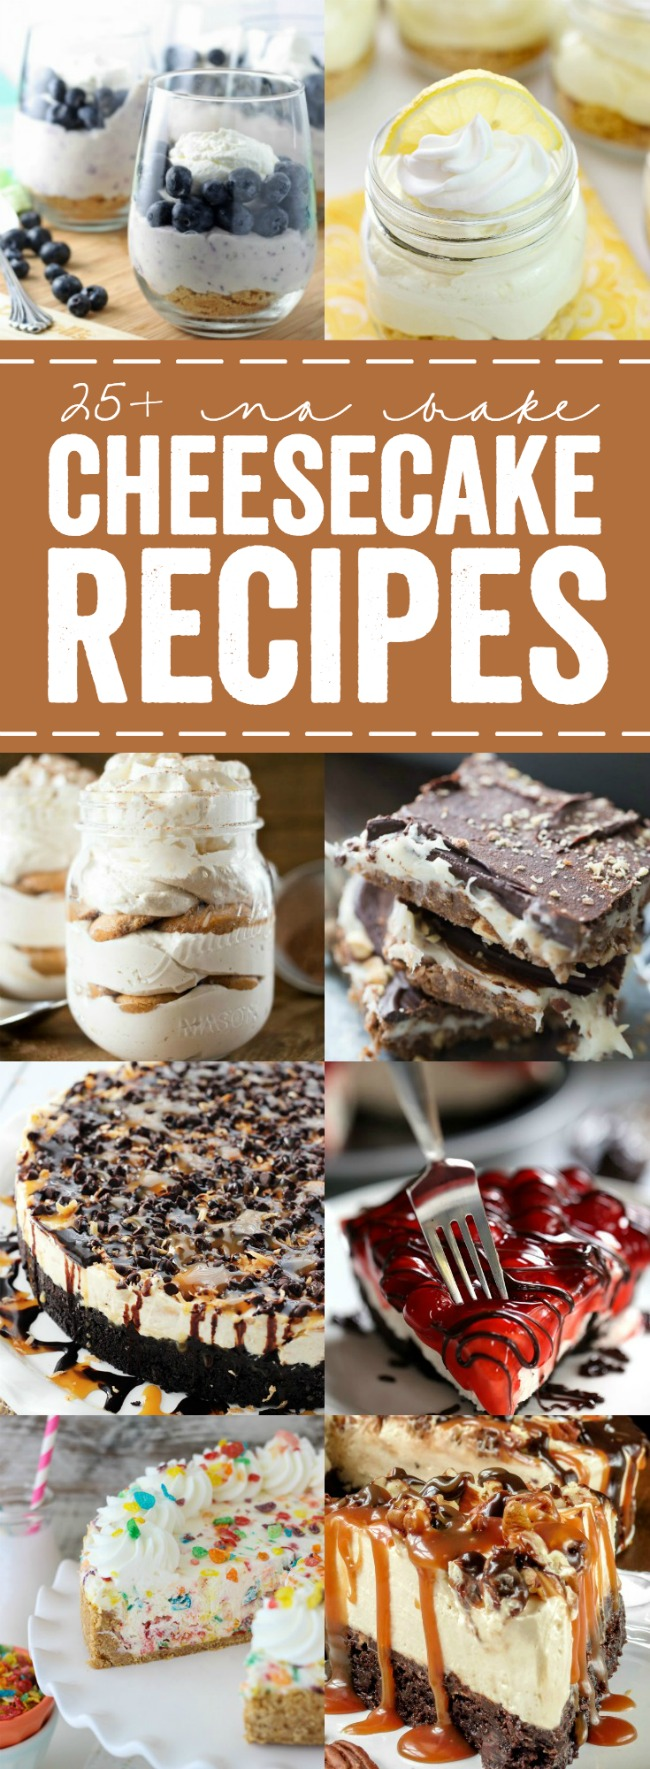 25+ No Bake Cheesecake Recipes - the perfect dessert for summer! Choose from a list of unique flavors as well as classic favorites!